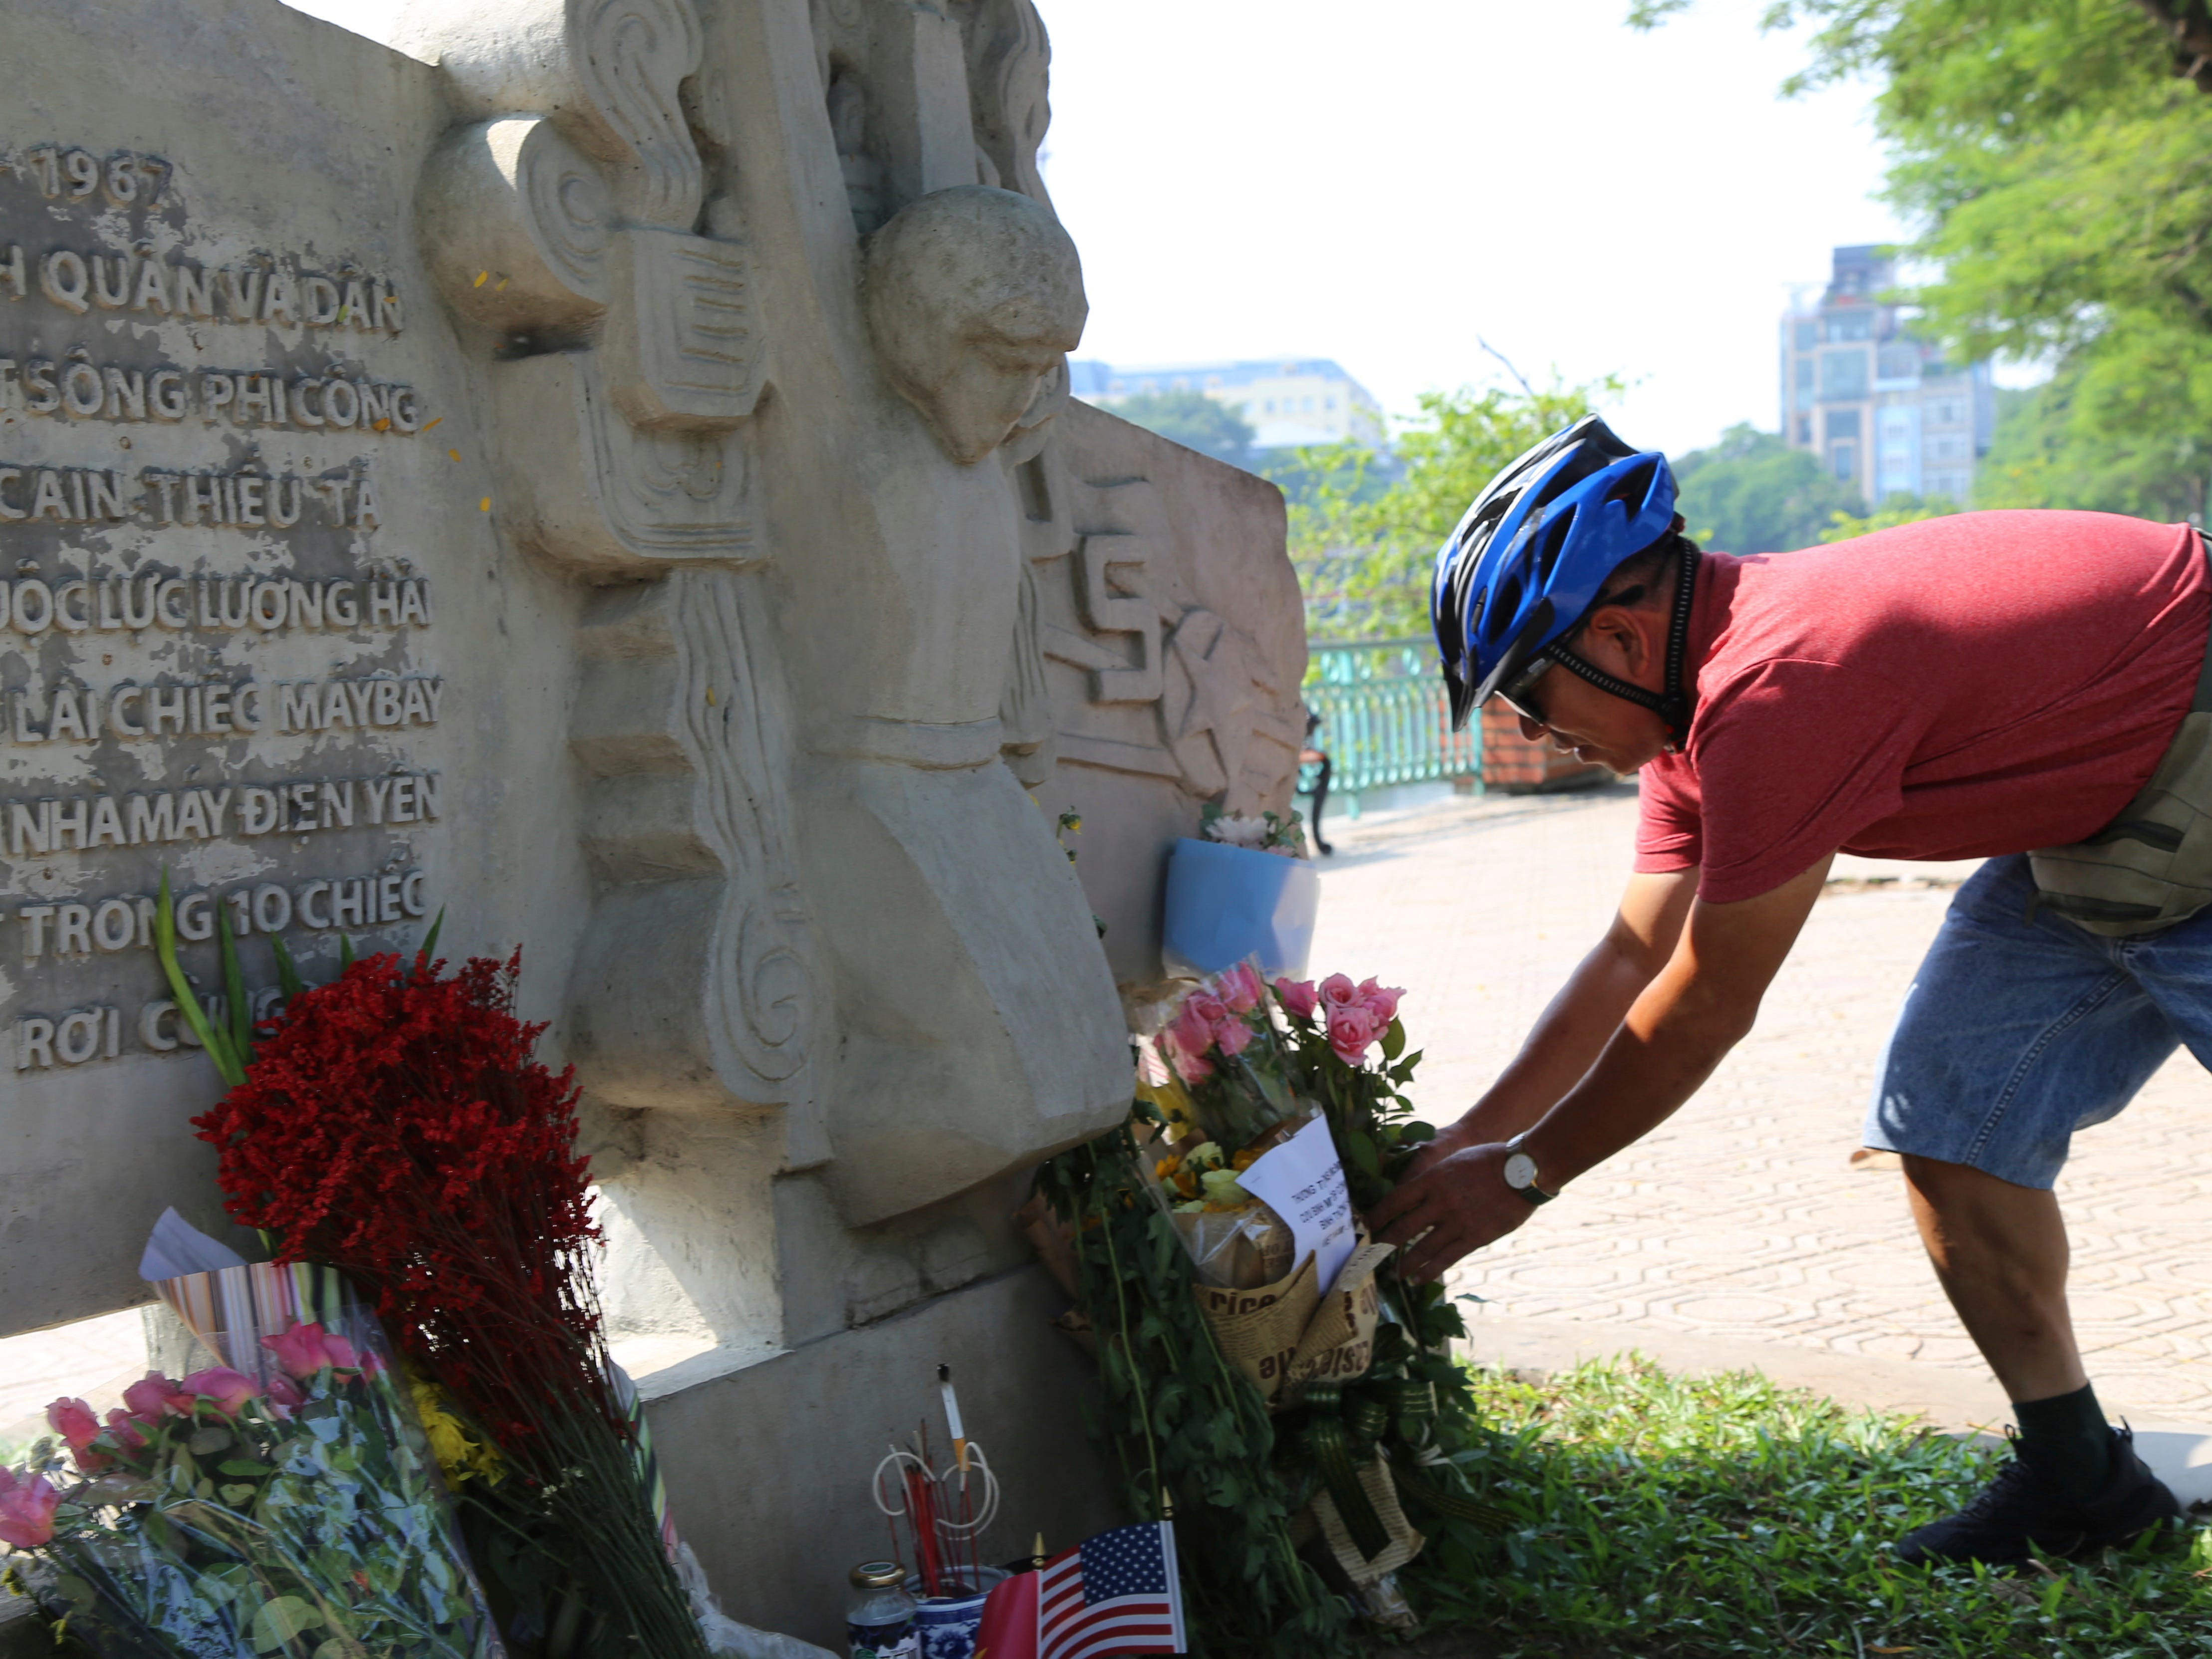 Pham Van Khanh, a 62-year-old retiree, lays flowers at the monument of Sen. John McCain in Hanoi, Vietnam, Aug. 27, 2018. The monument was erected by Vietnamese authority to mark the day when McCain's plane, a Major in the U.S. Navy was shot down in 1967.